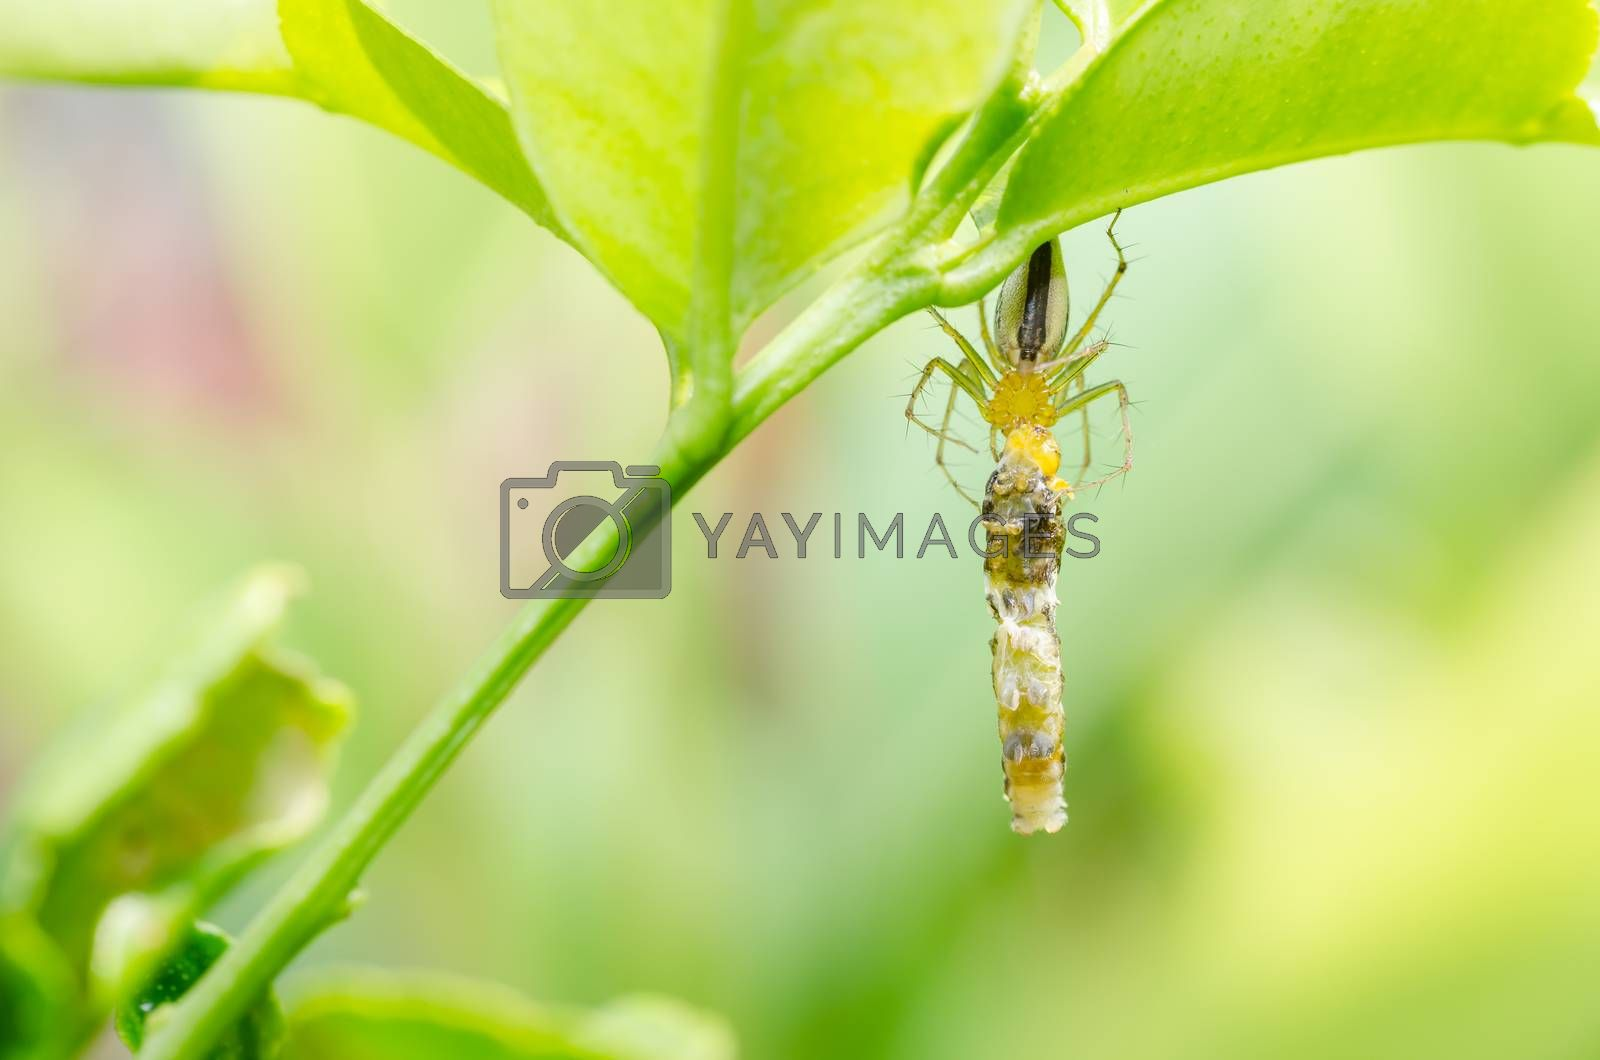 Spider eat worm in green nature background by sweetcrisis